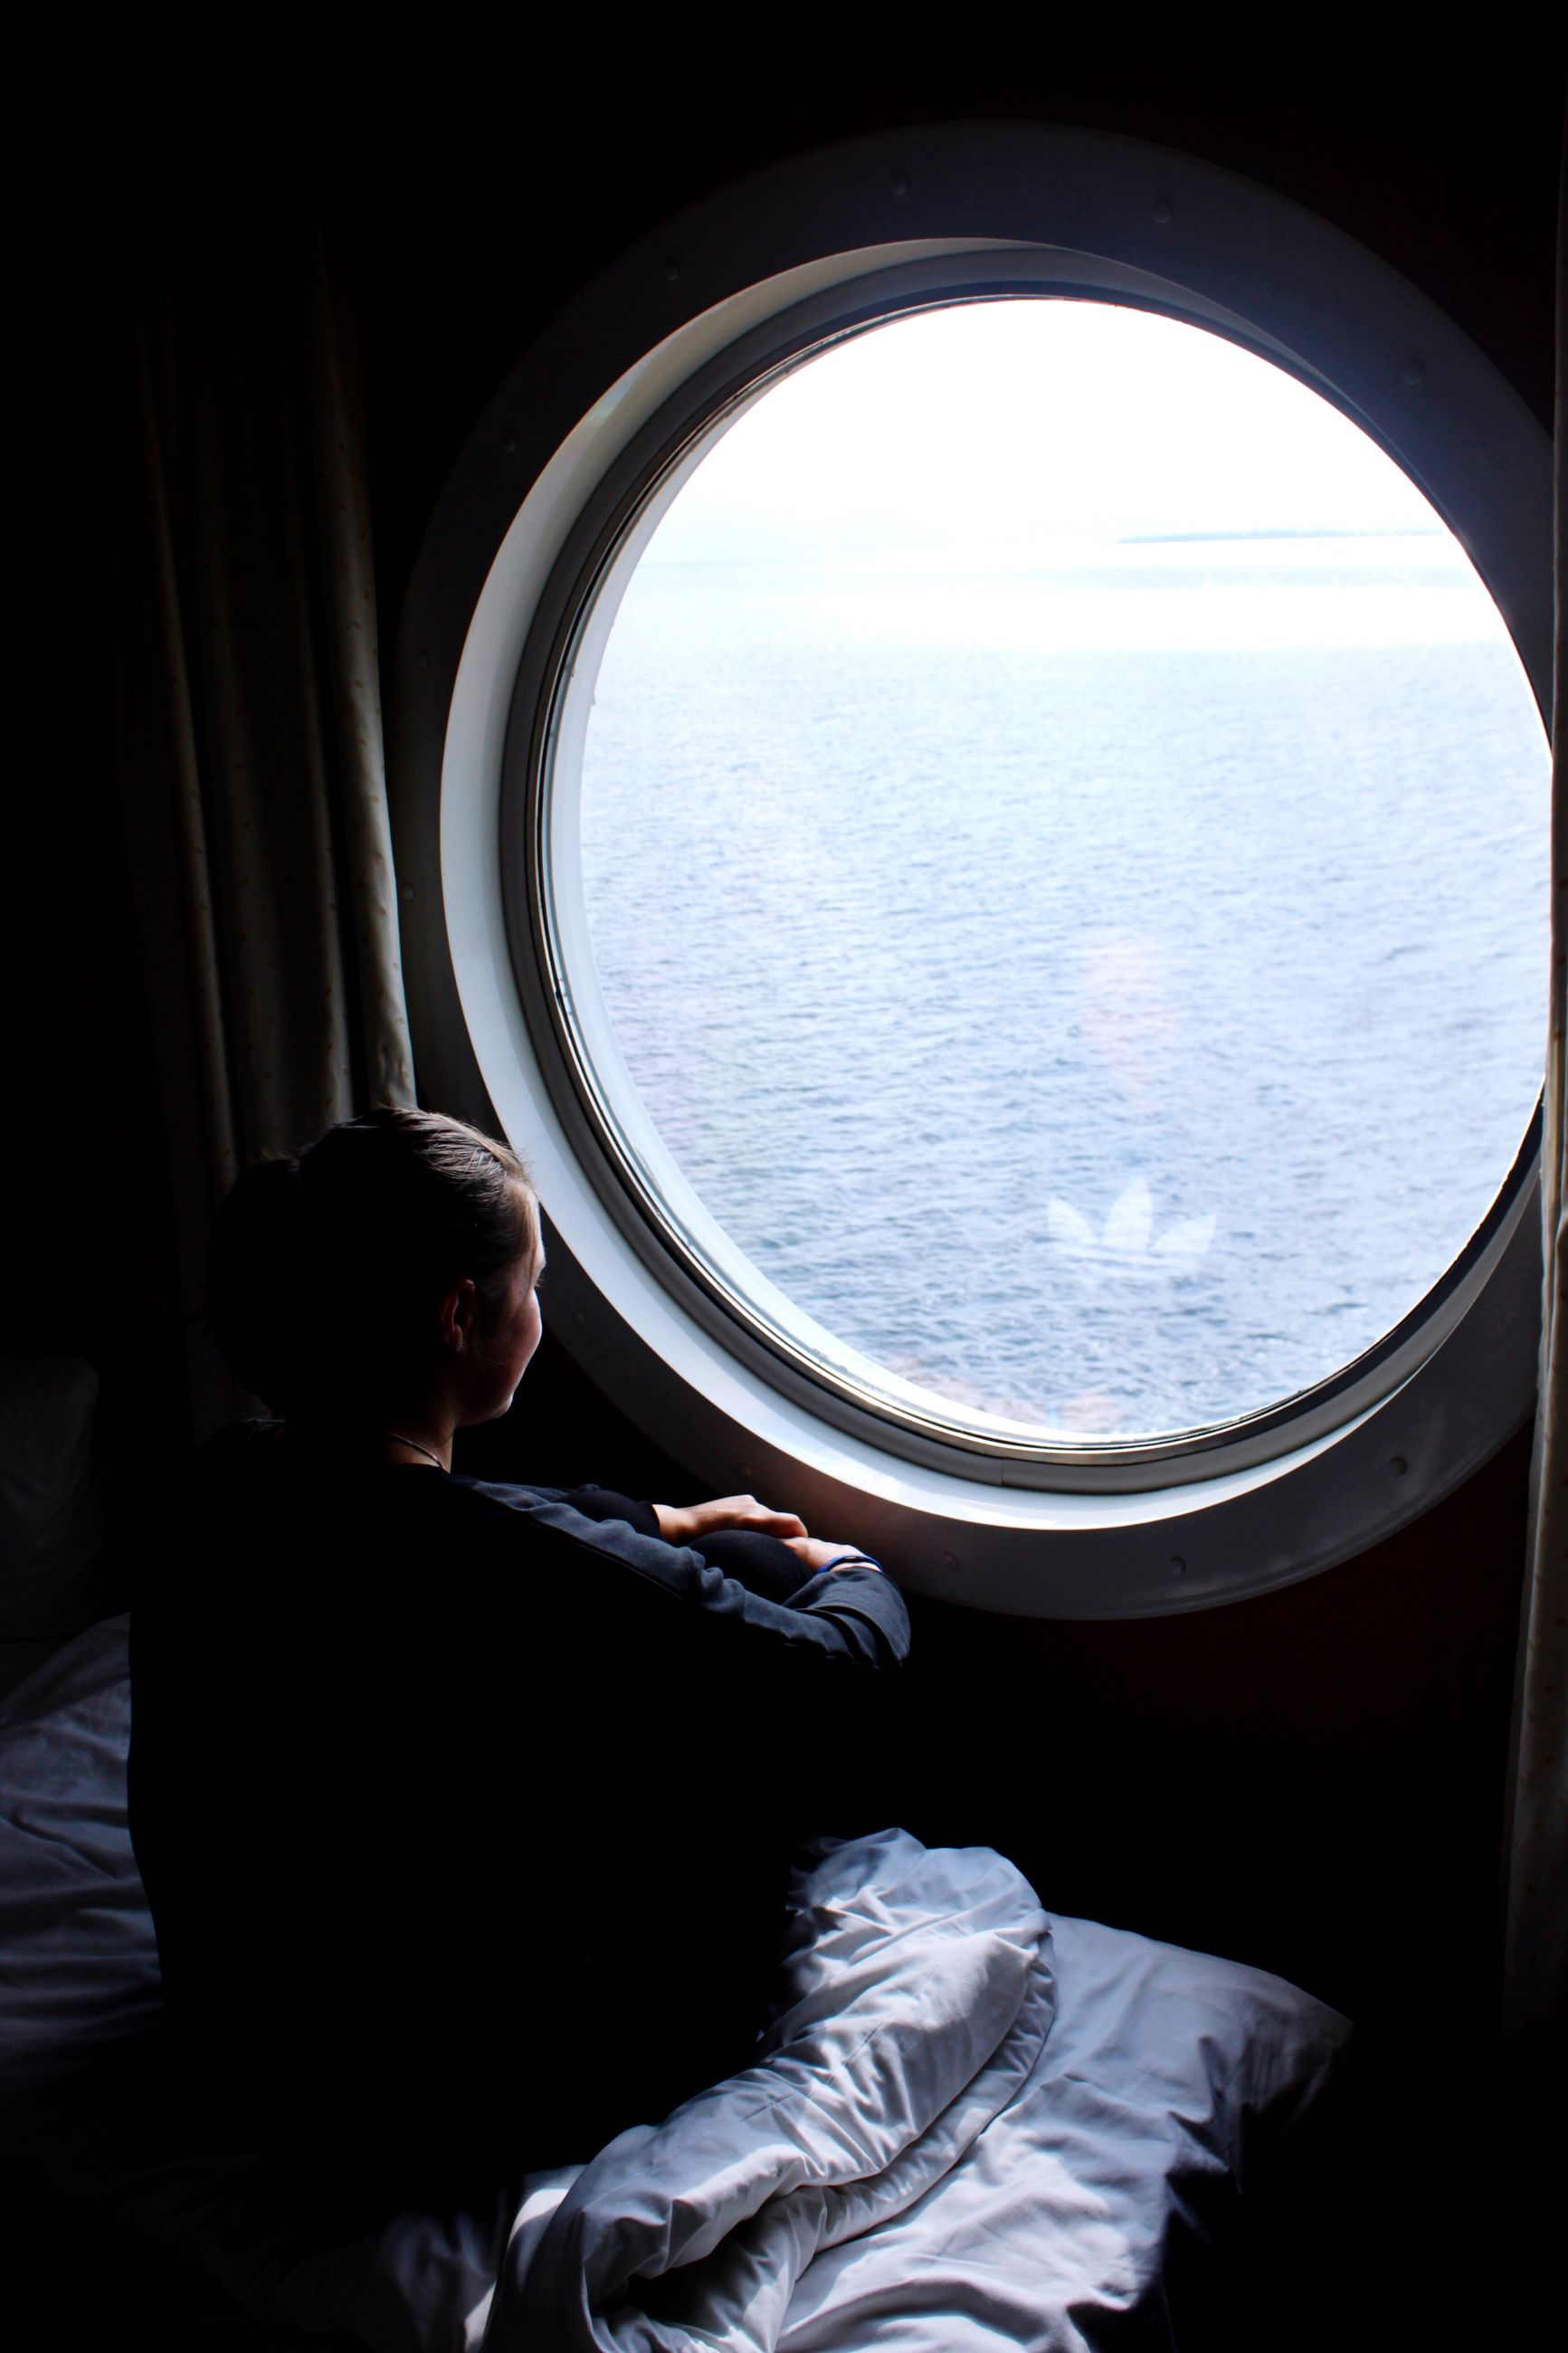 sea, window, water, sitting, indoors, rear view, full length, vacations, journey, day, tourism